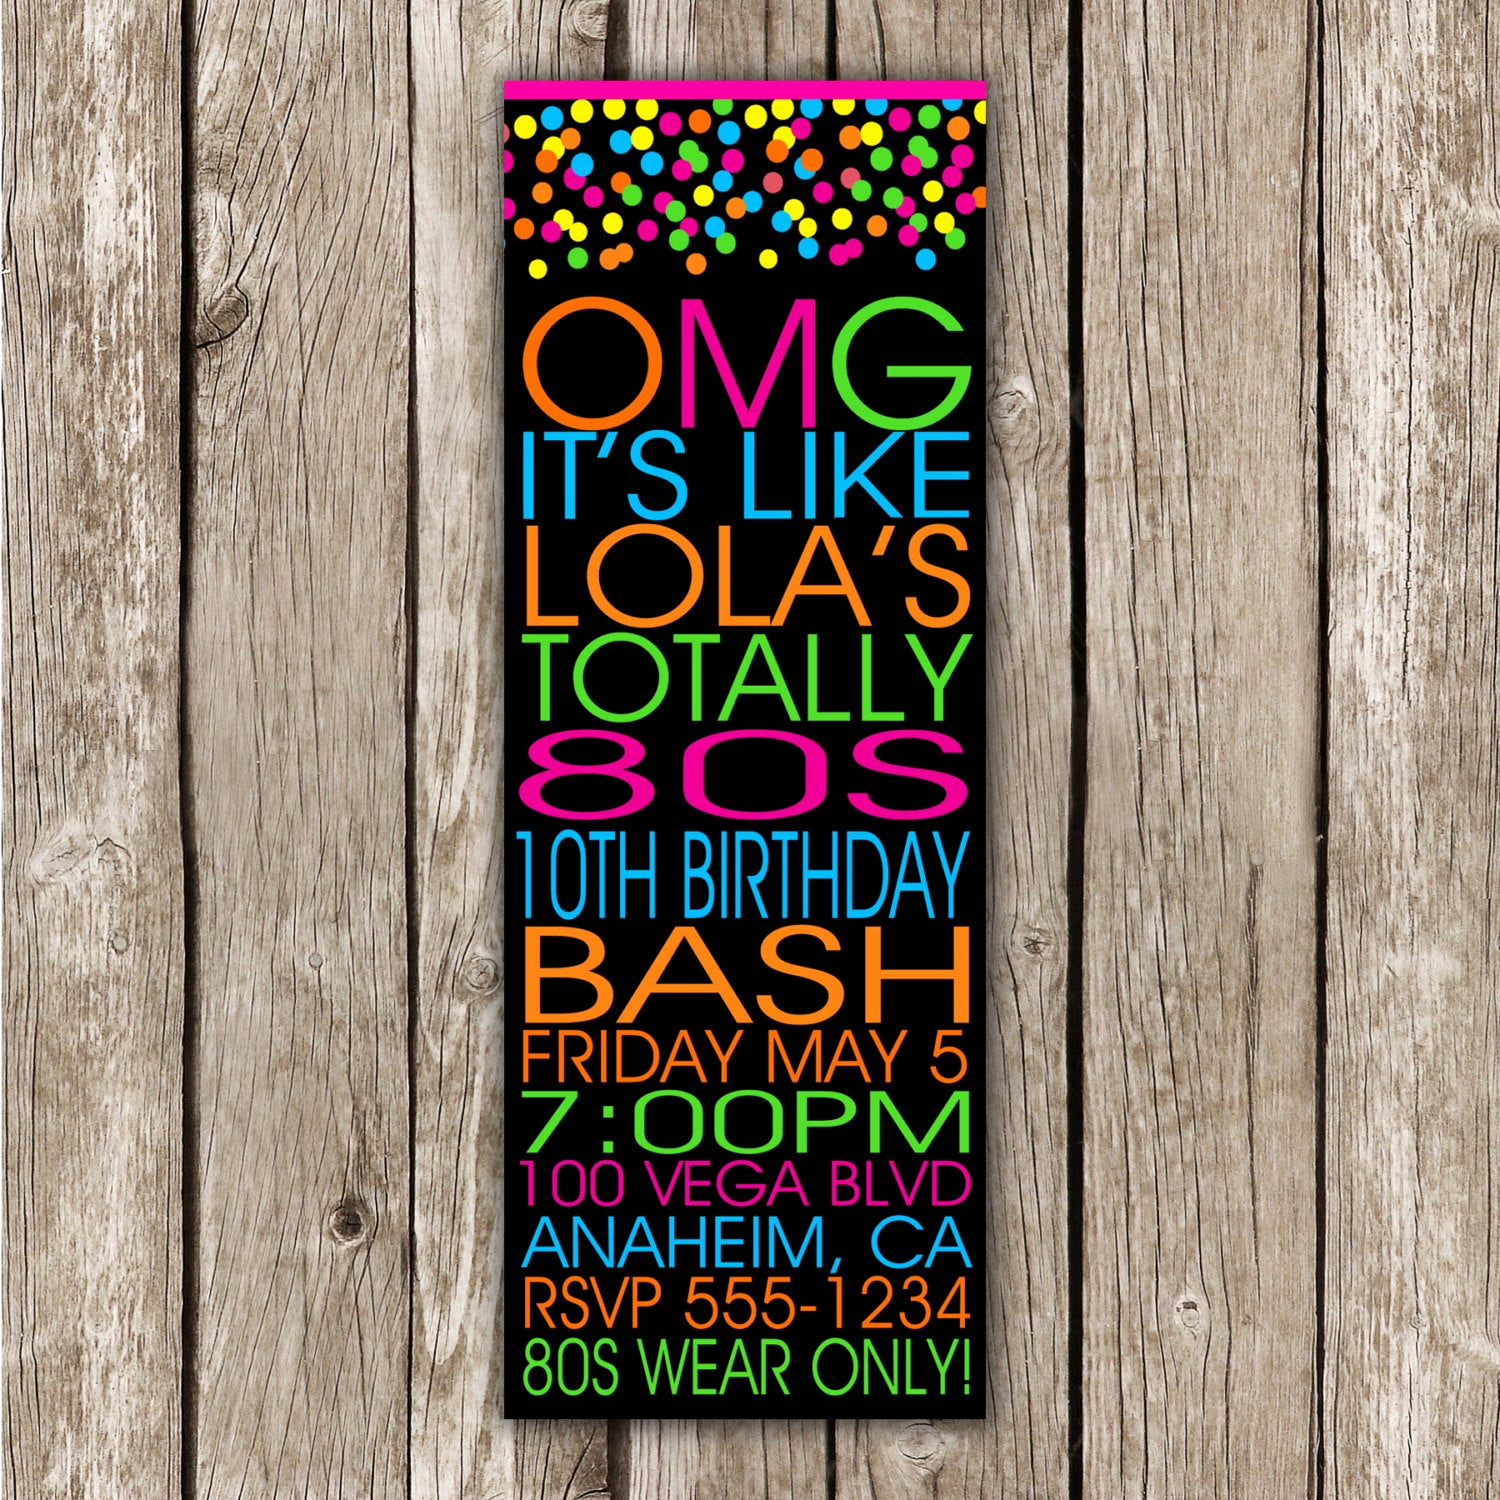 Glow Party Invitation Template Fresh 80s Invitation Dance Party Glow Party Save the Date